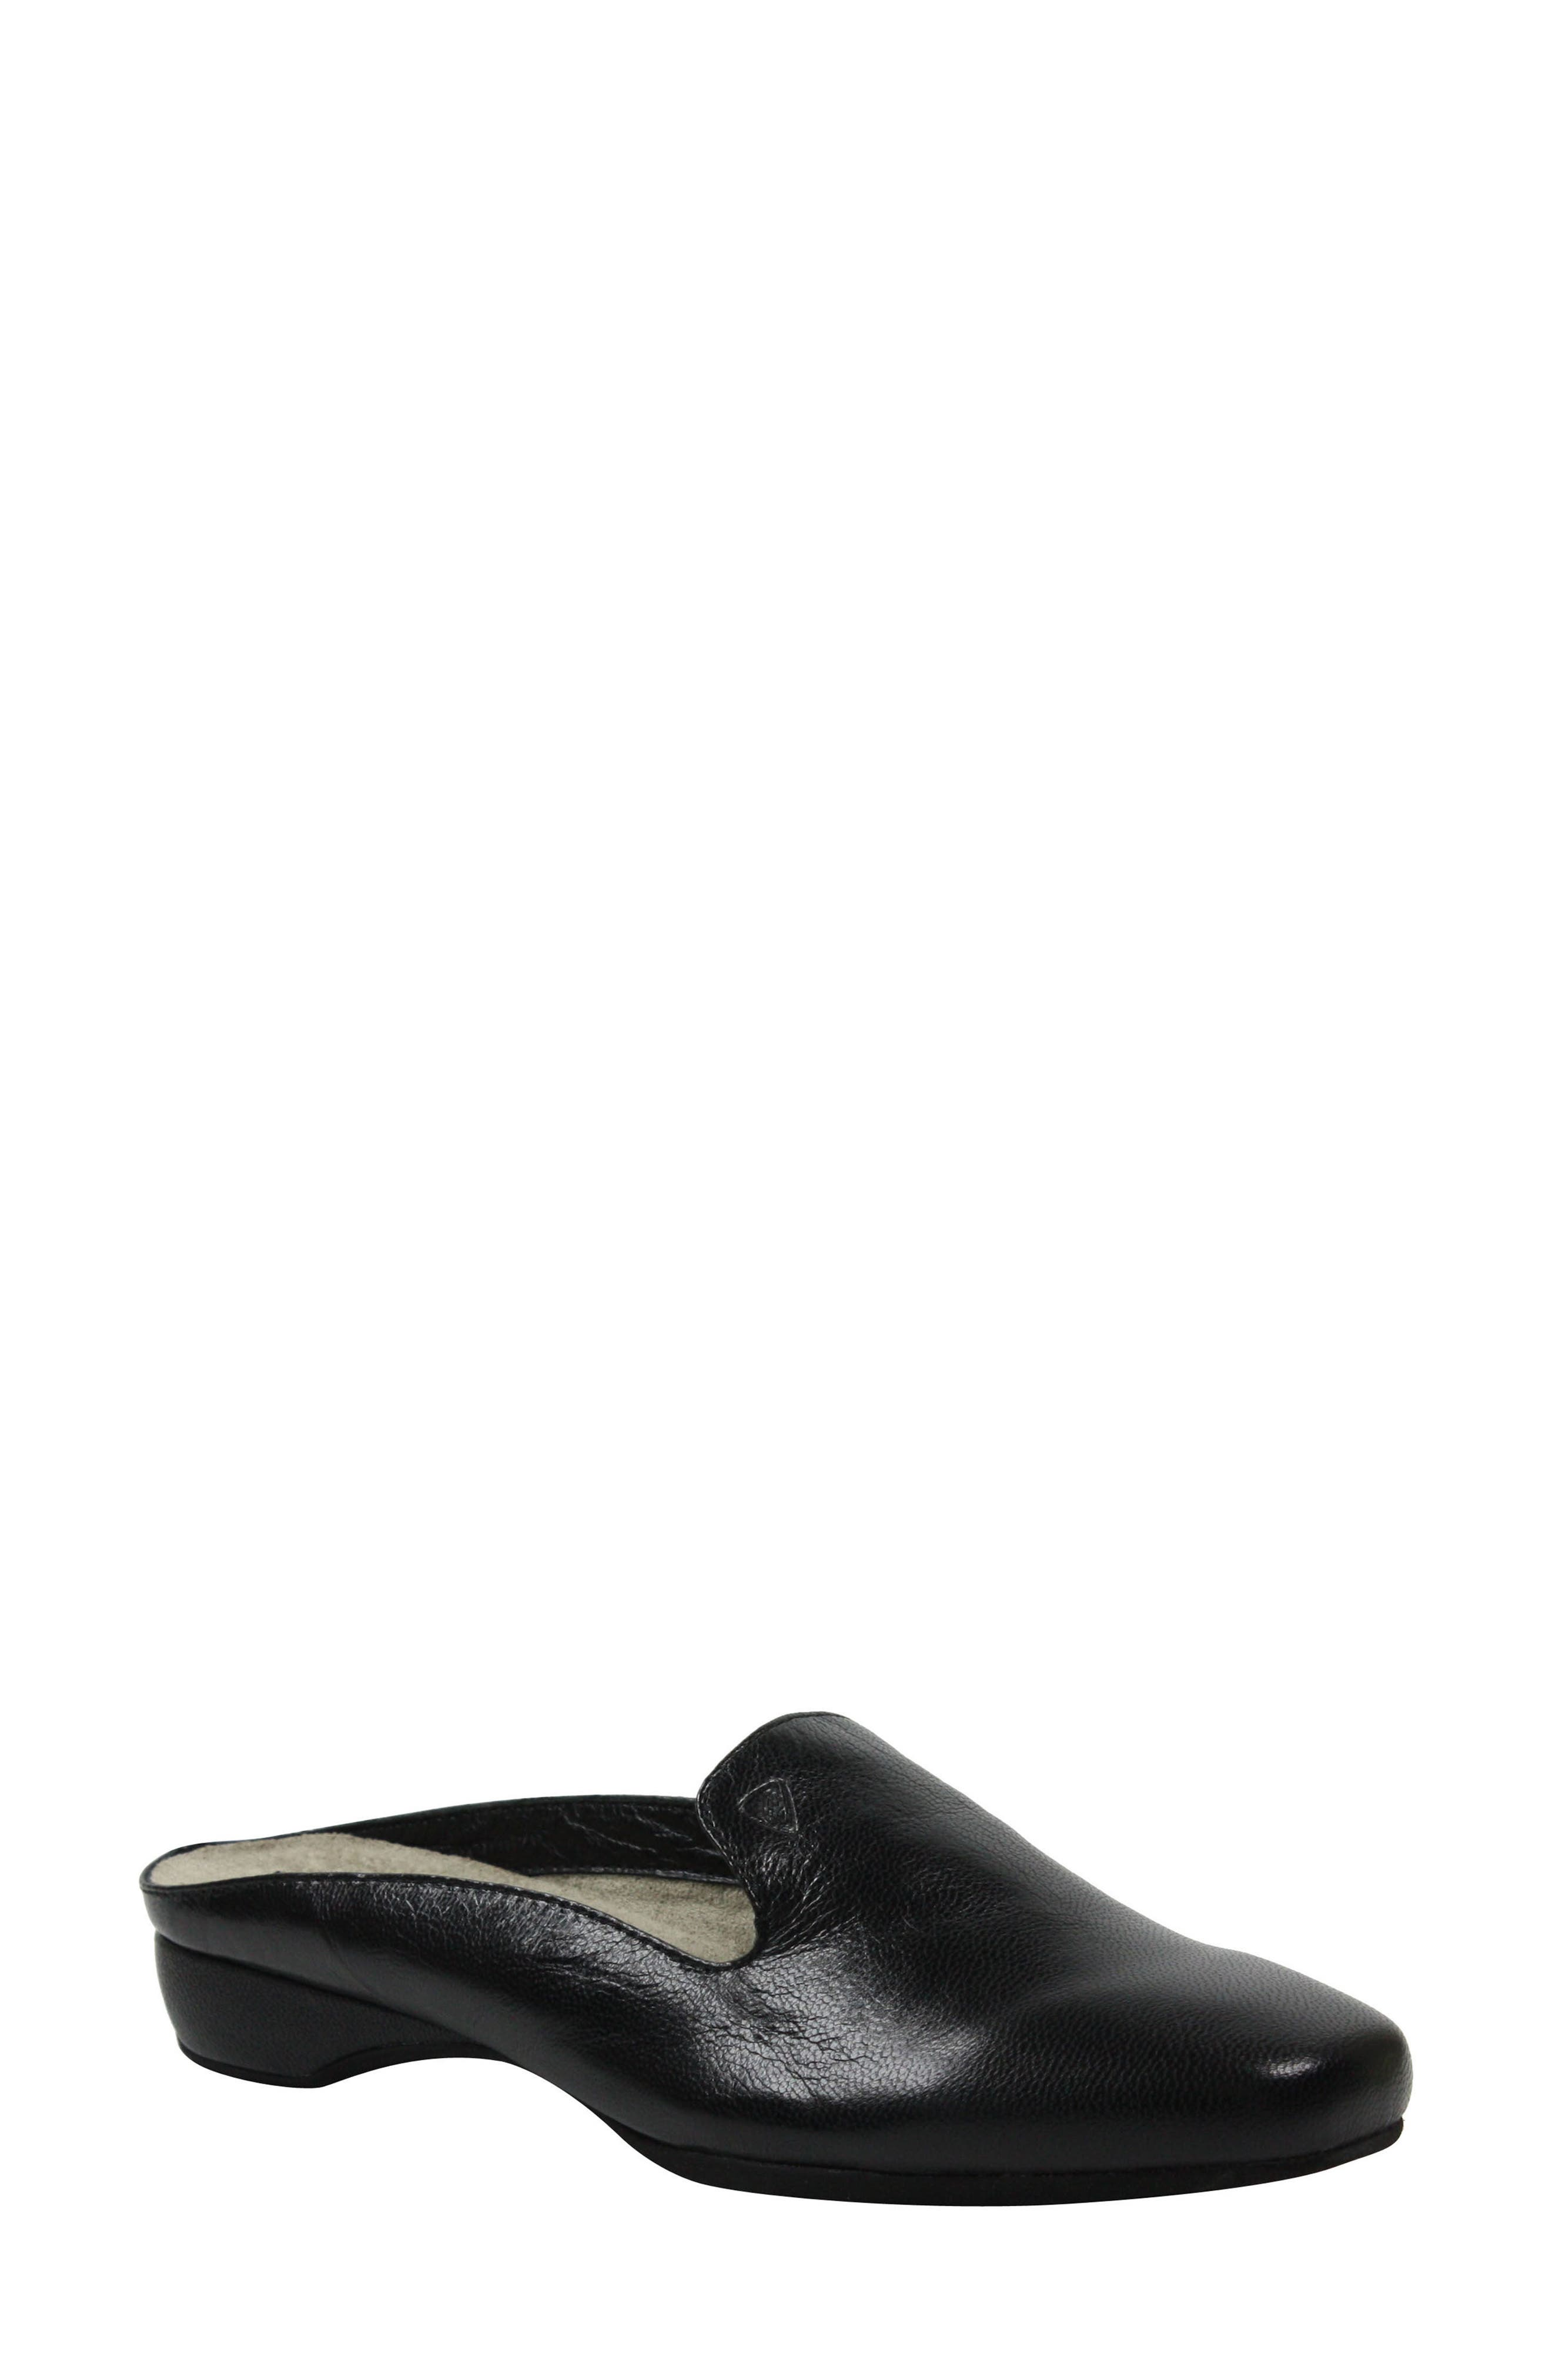 Chesir Mule,                             Main thumbnail 1, color,                             Black Leather